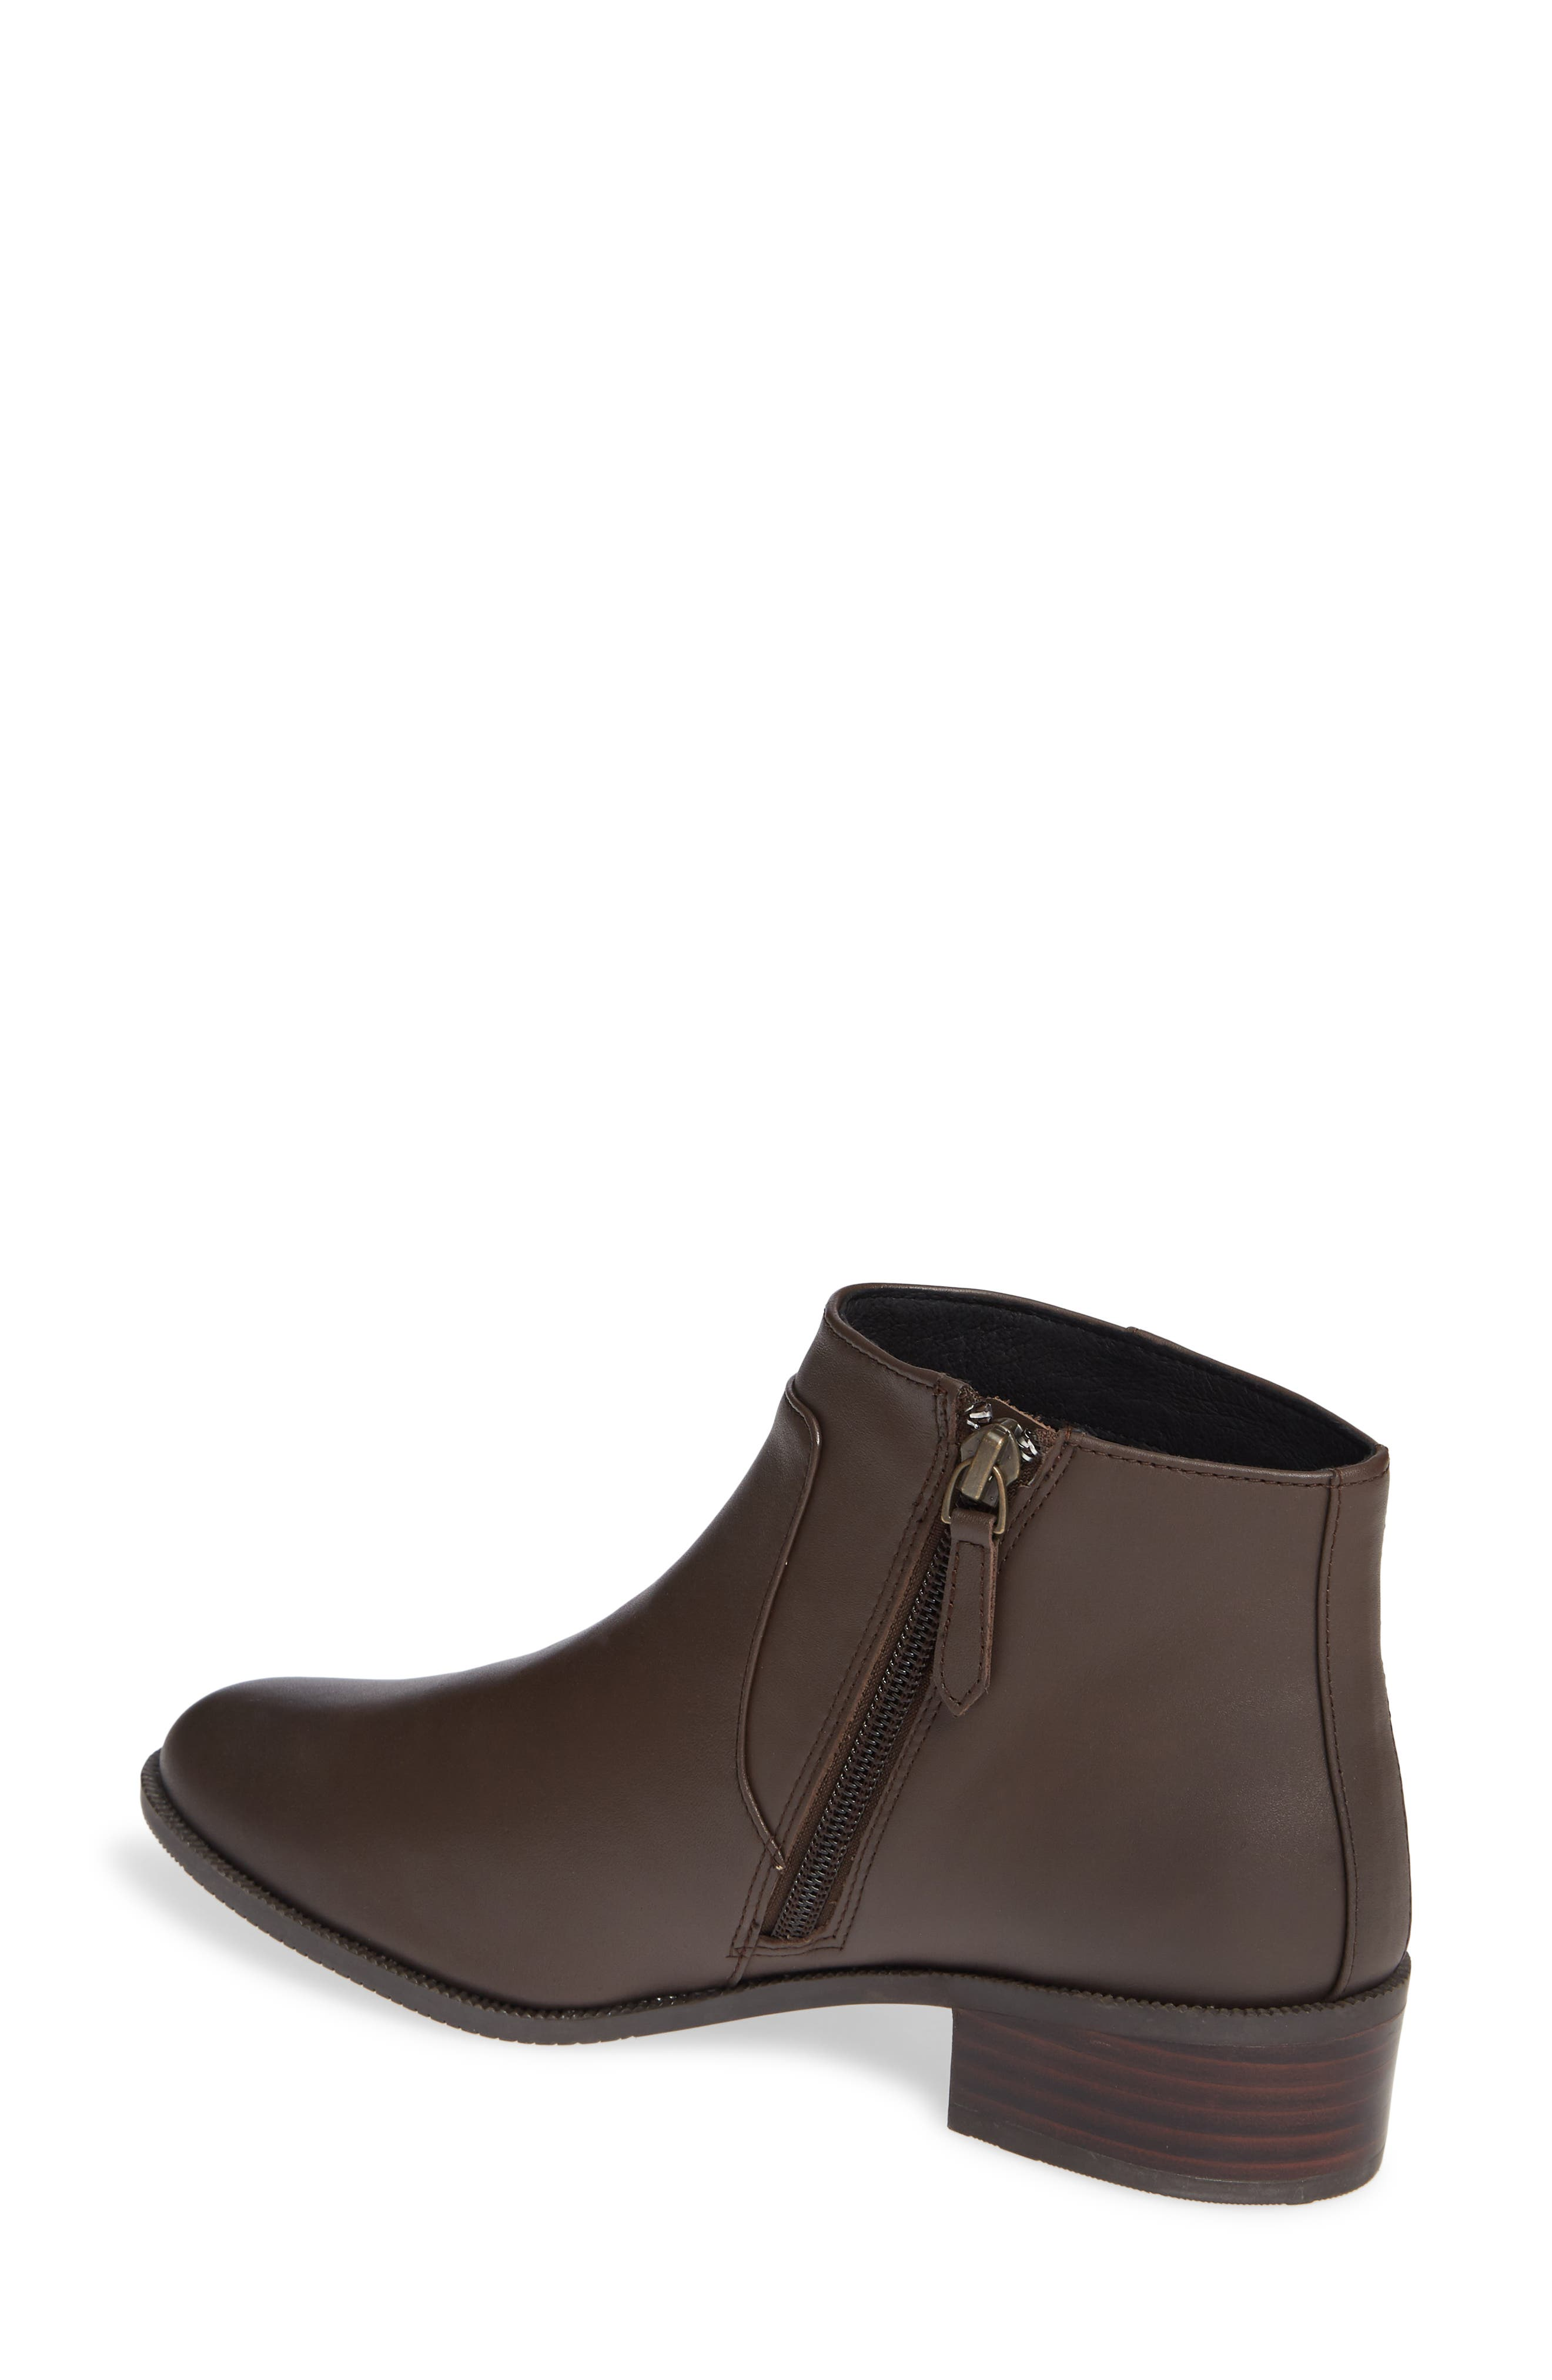 Benette Water Resistant Bootie,                             Alternate thumbnail 2, color,                             CHOCOLATE LEATHER